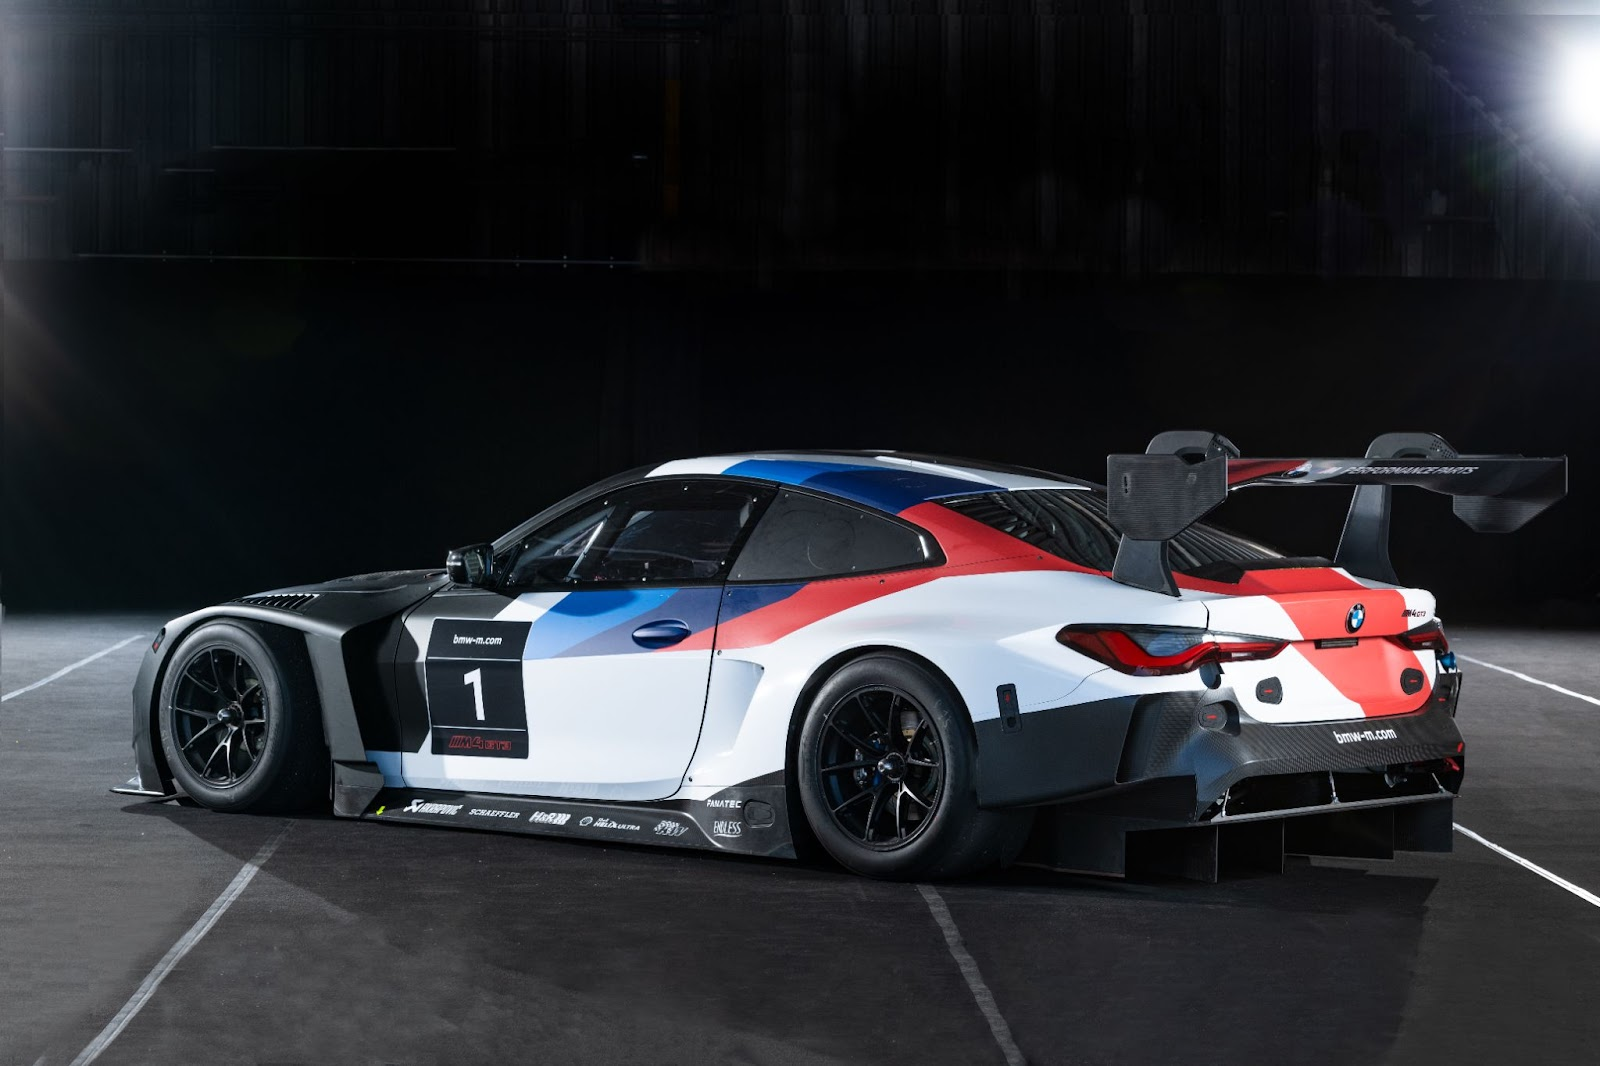 Even Kitted Out For GT3 Racing, The New BMW M4 Is Unforgivably Ugly